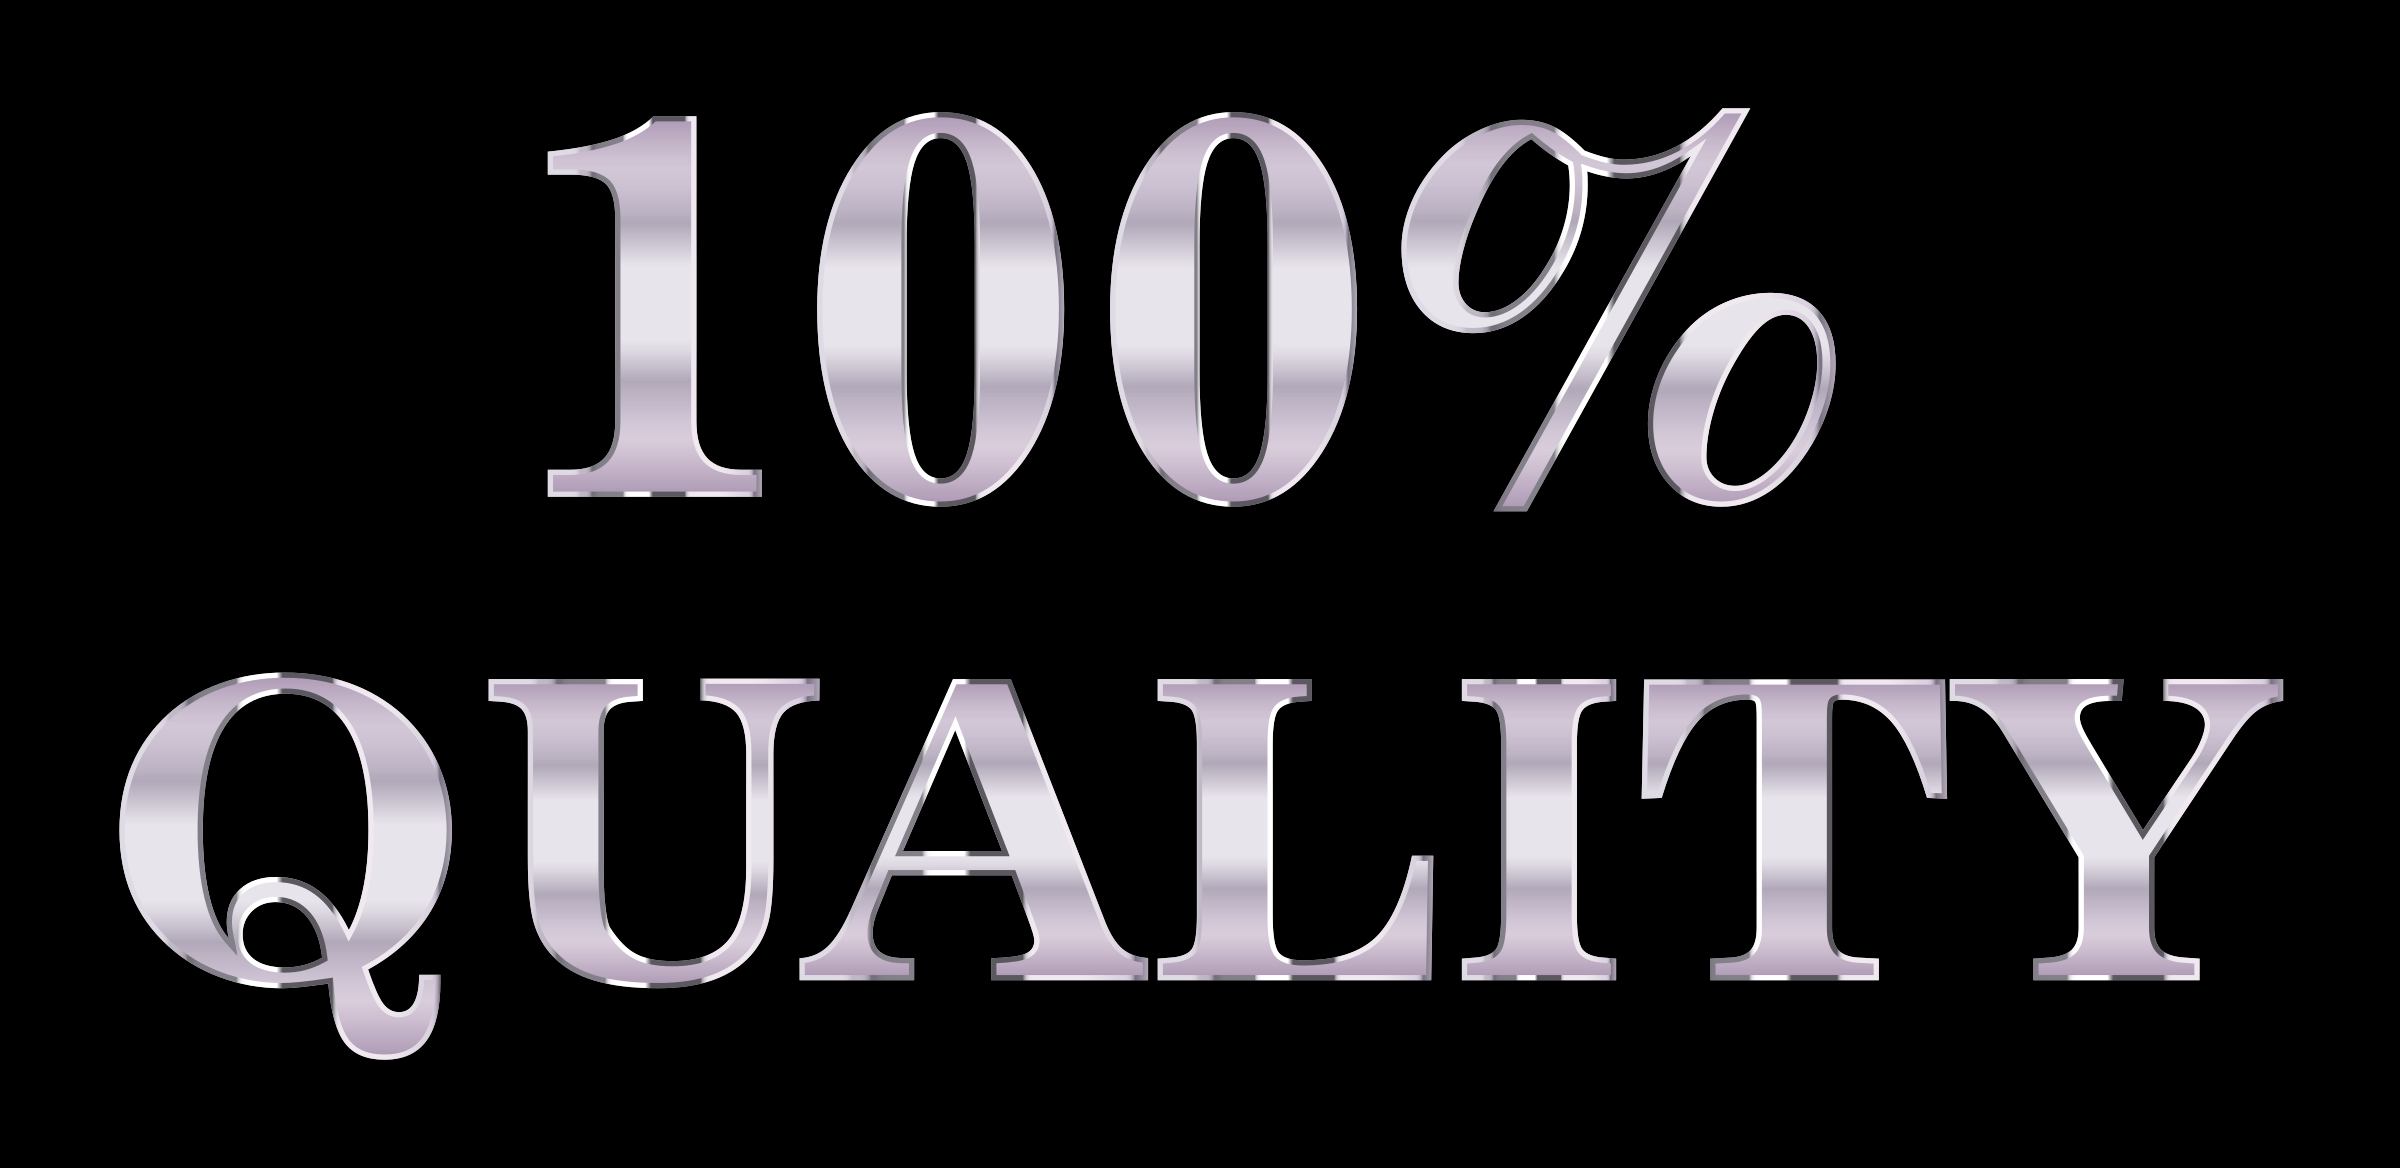 100 Percent Quality Typography Silver by GDJ